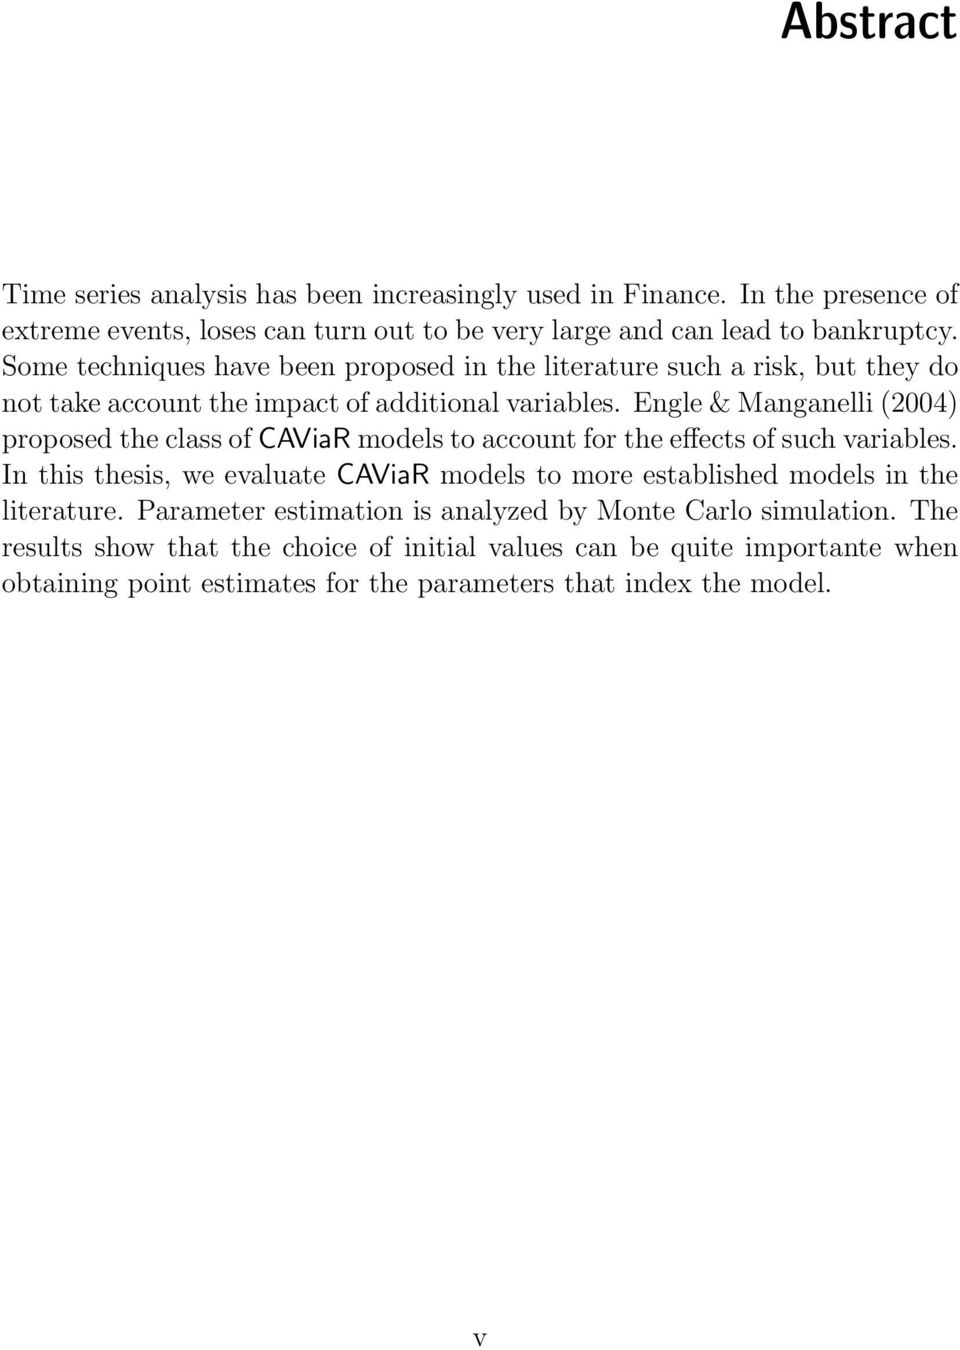 Engle & Manganelli (2004) proposed the class of CAViaR models to account for the effects of such variables.